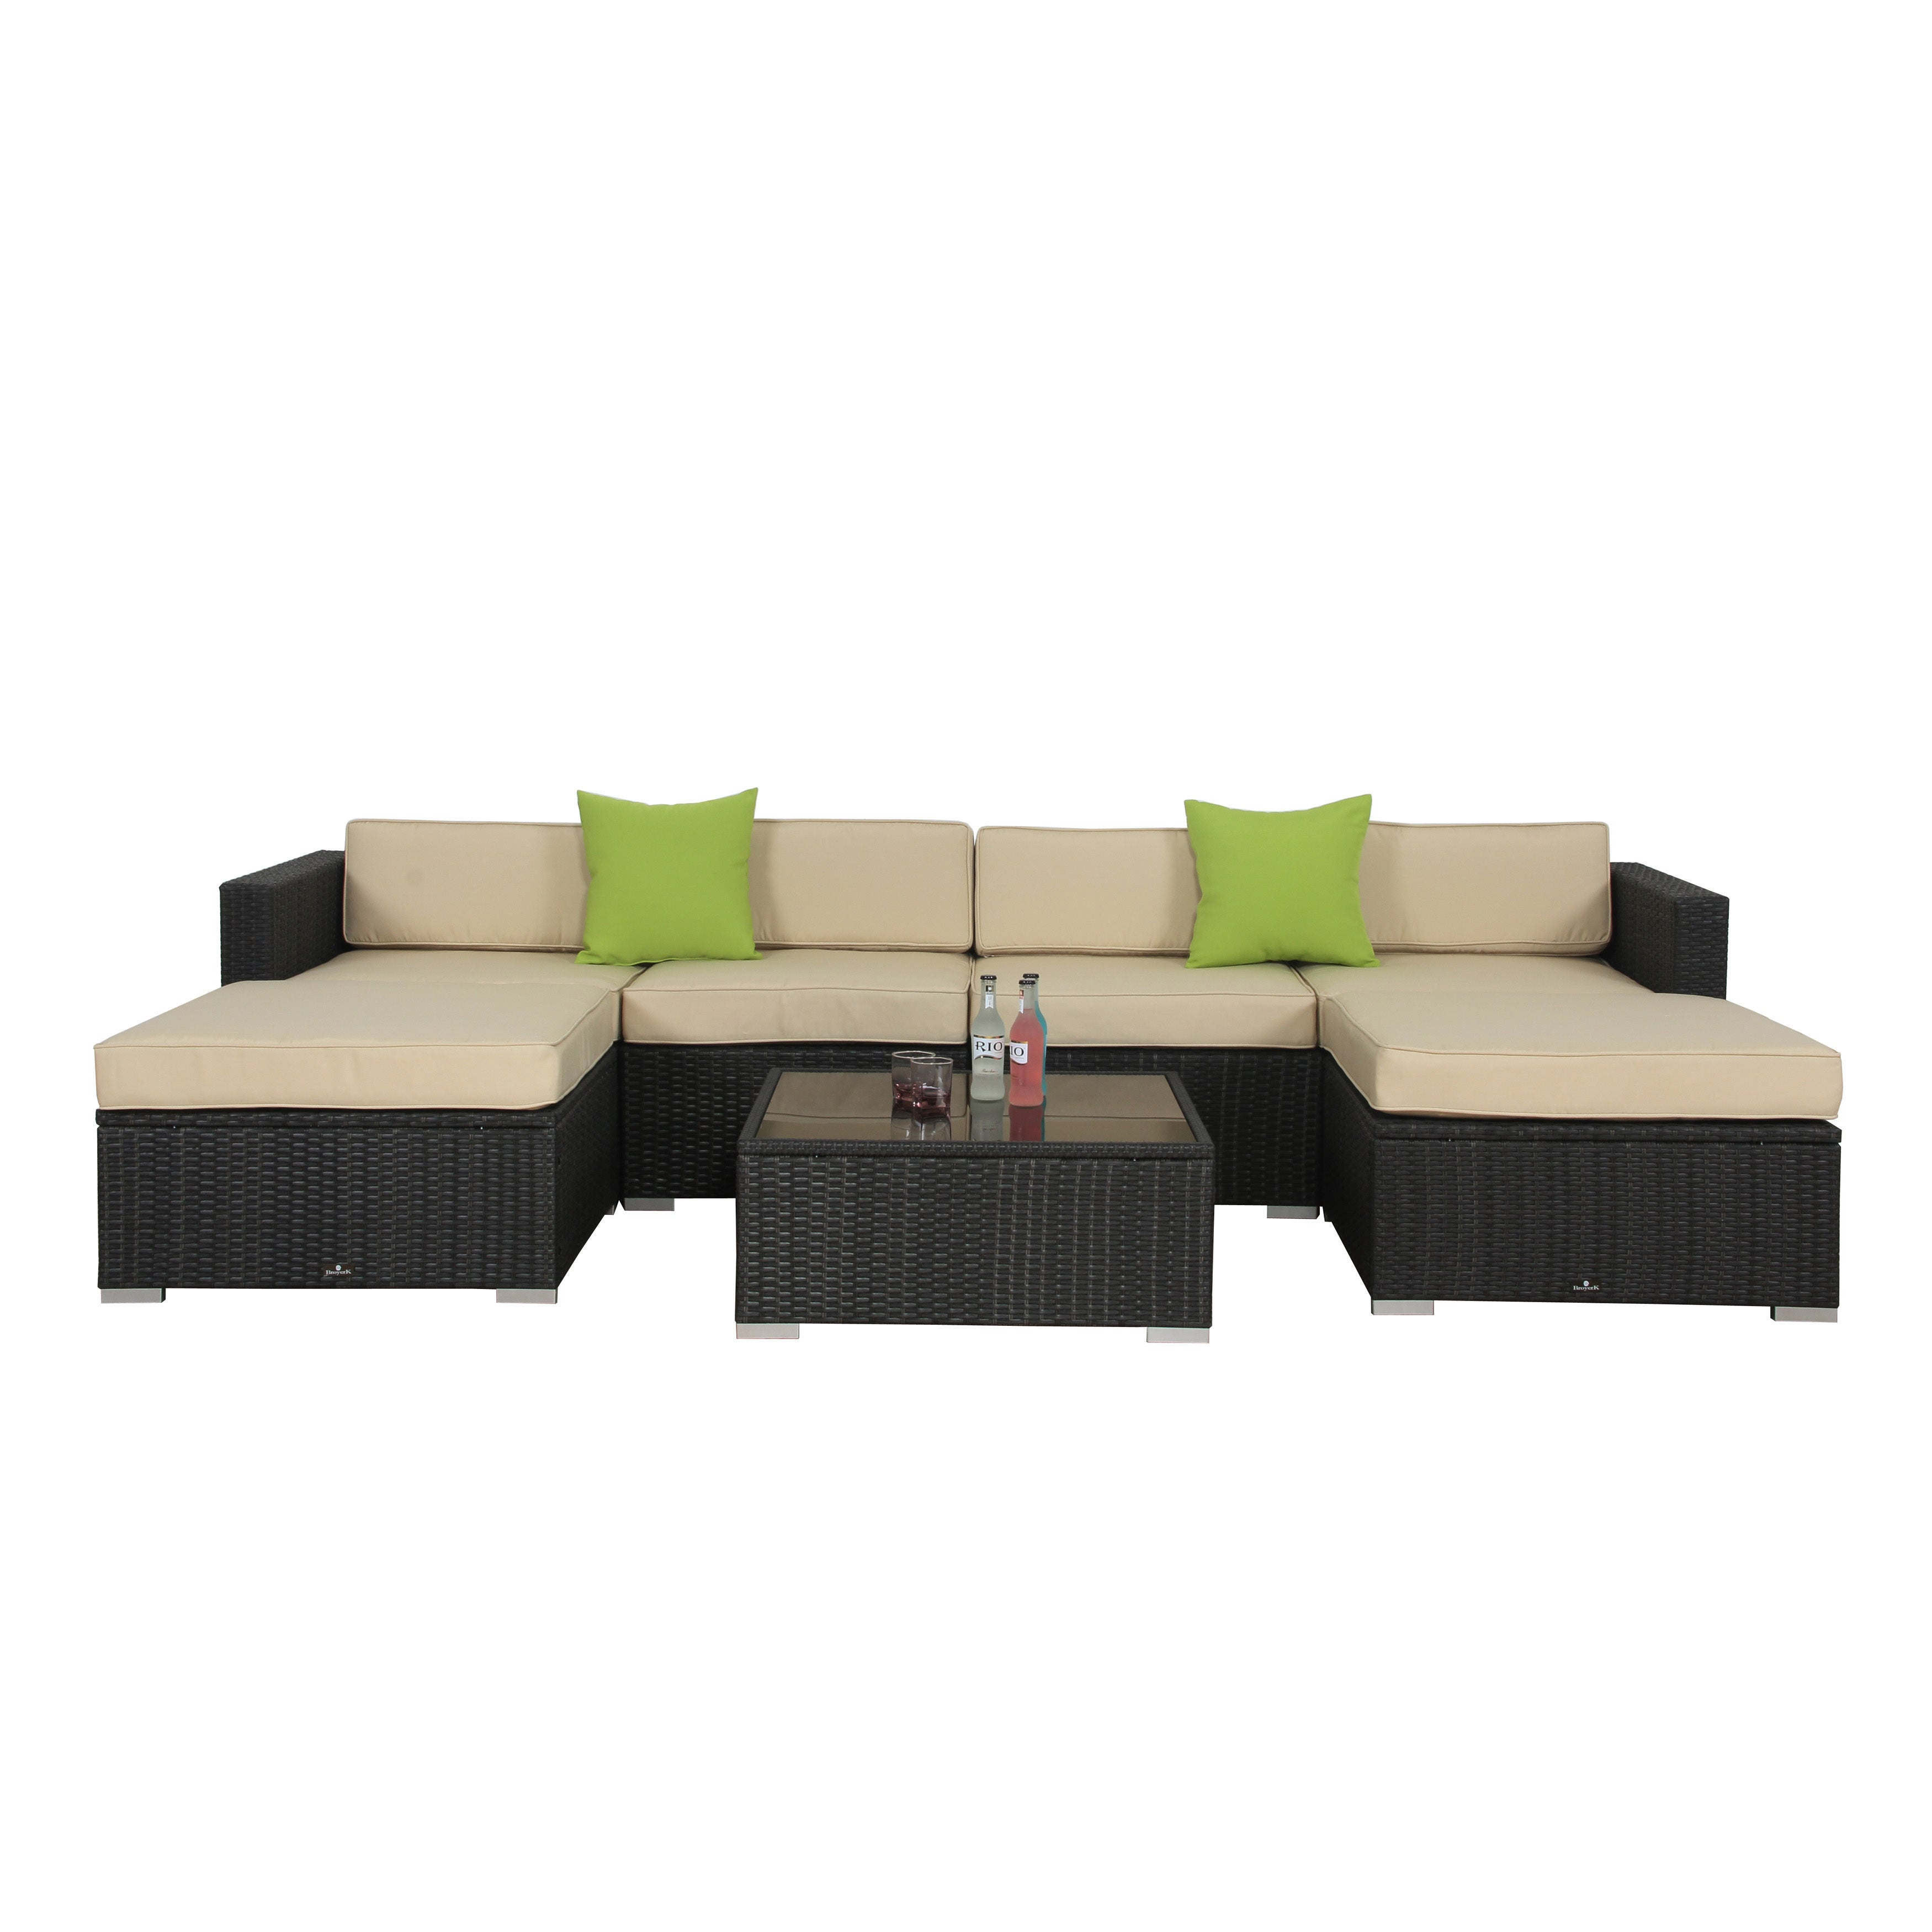 broyerk home patio outdoor overstock df rattan today furniture beige free shipping set product garden piece